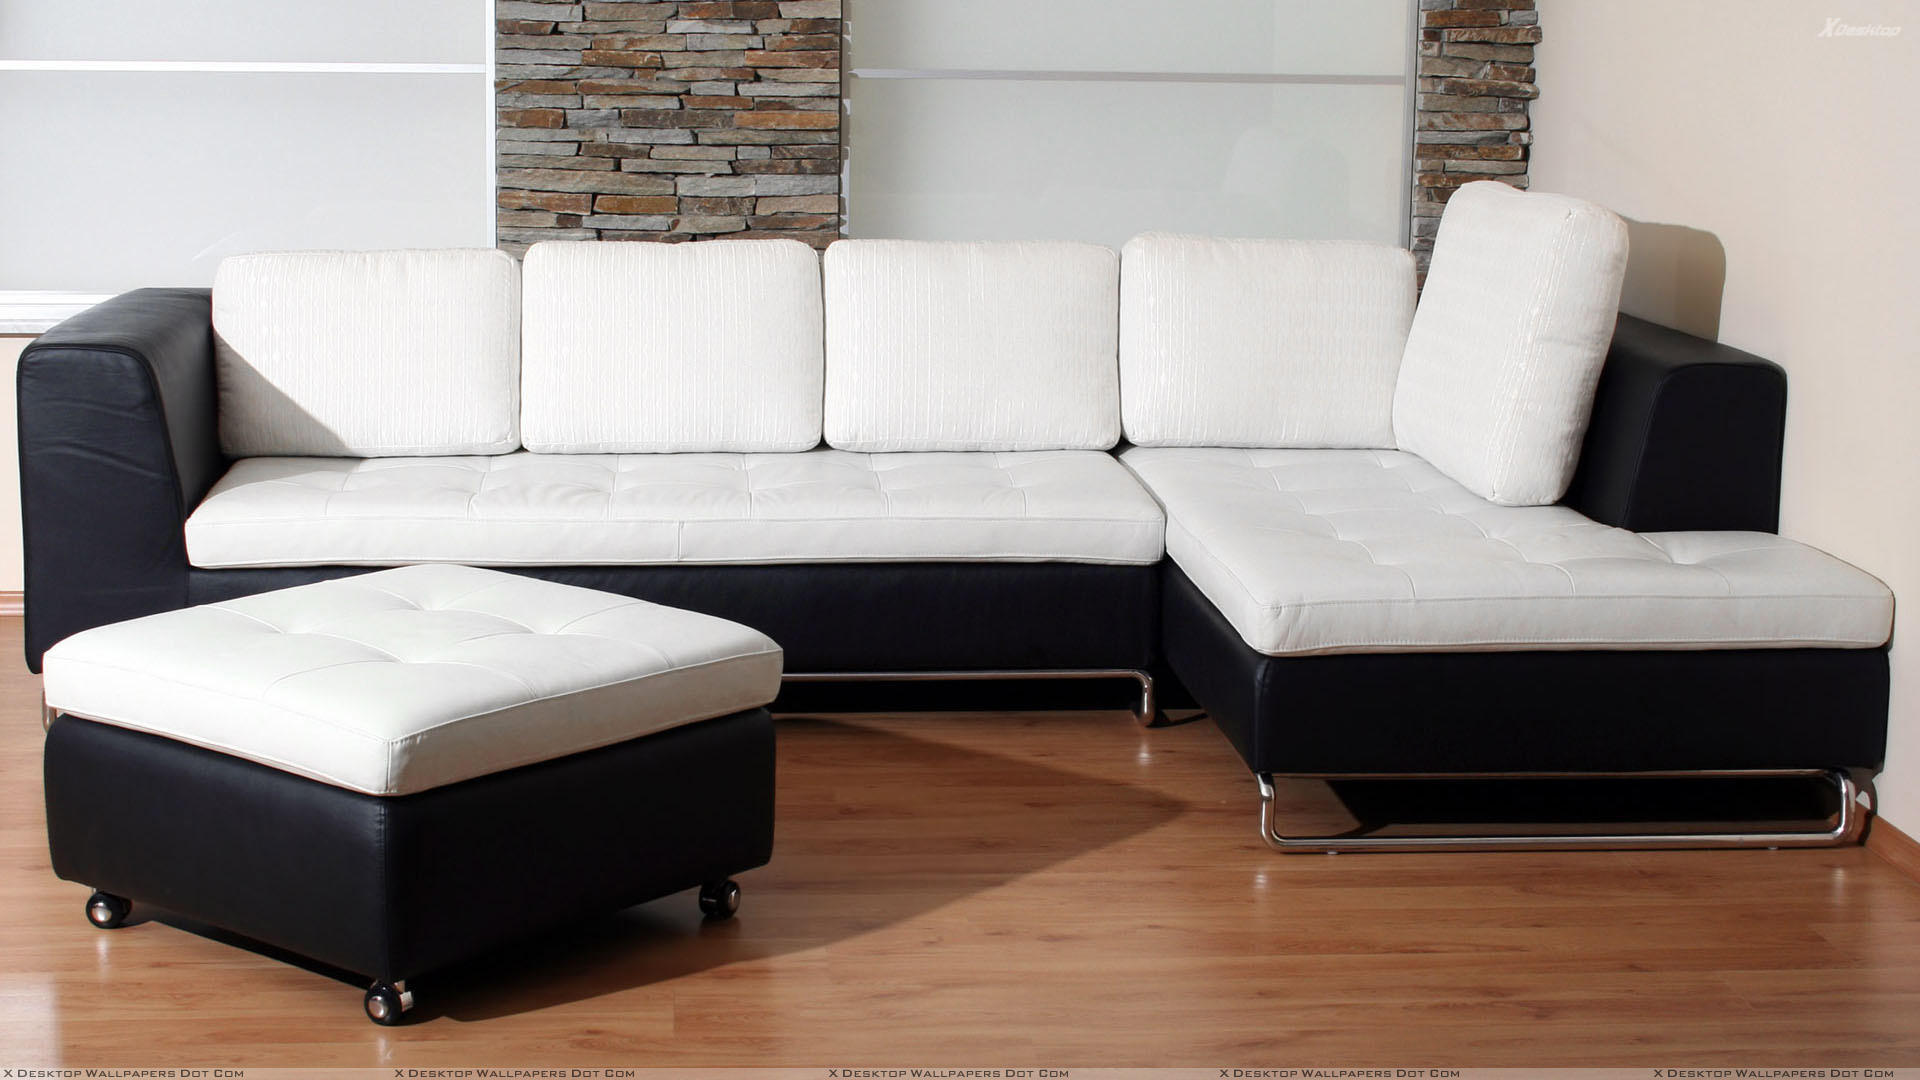 black and white sofa set with brown floor wallpaper. Black Bedroom Furniture Sets. Home Design Ideas